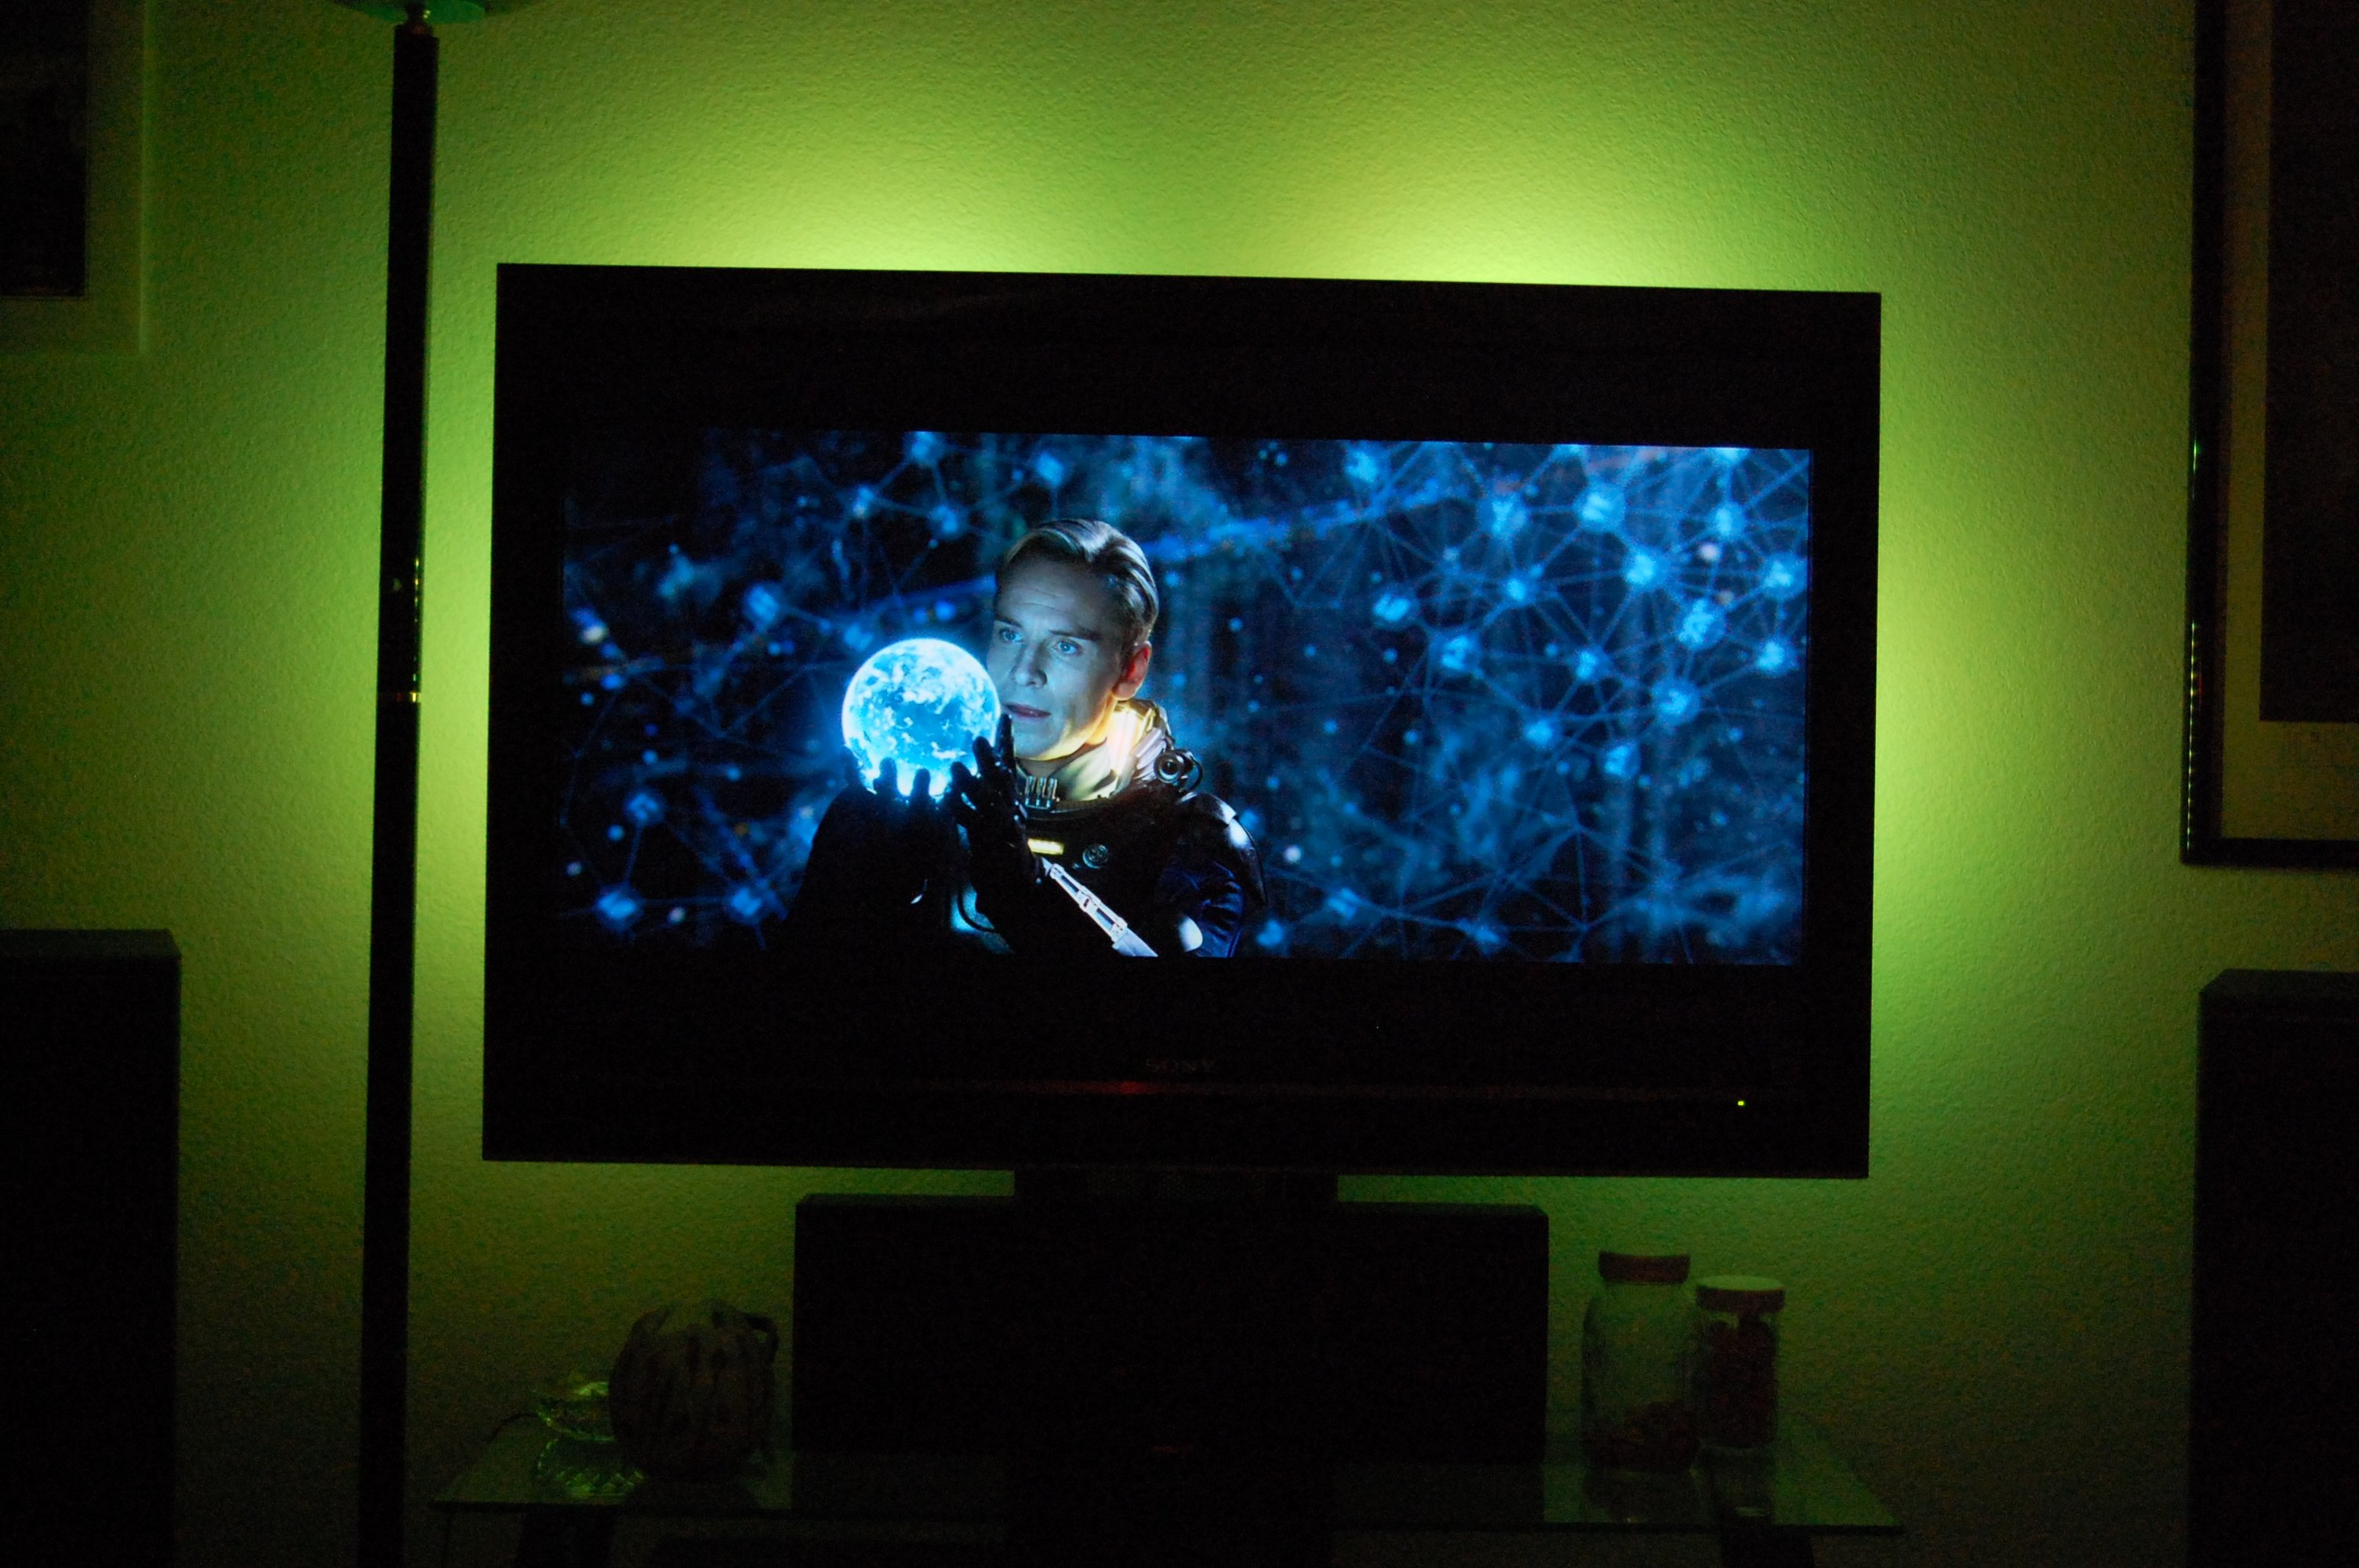 Ambient light for behind a TV suggestions - Page 2 - AVS Forum   Home Theater Discussions And Reviews & Ambient light for behind a TV suggestions - Page 2 - AVS Forum ... azcodes.com